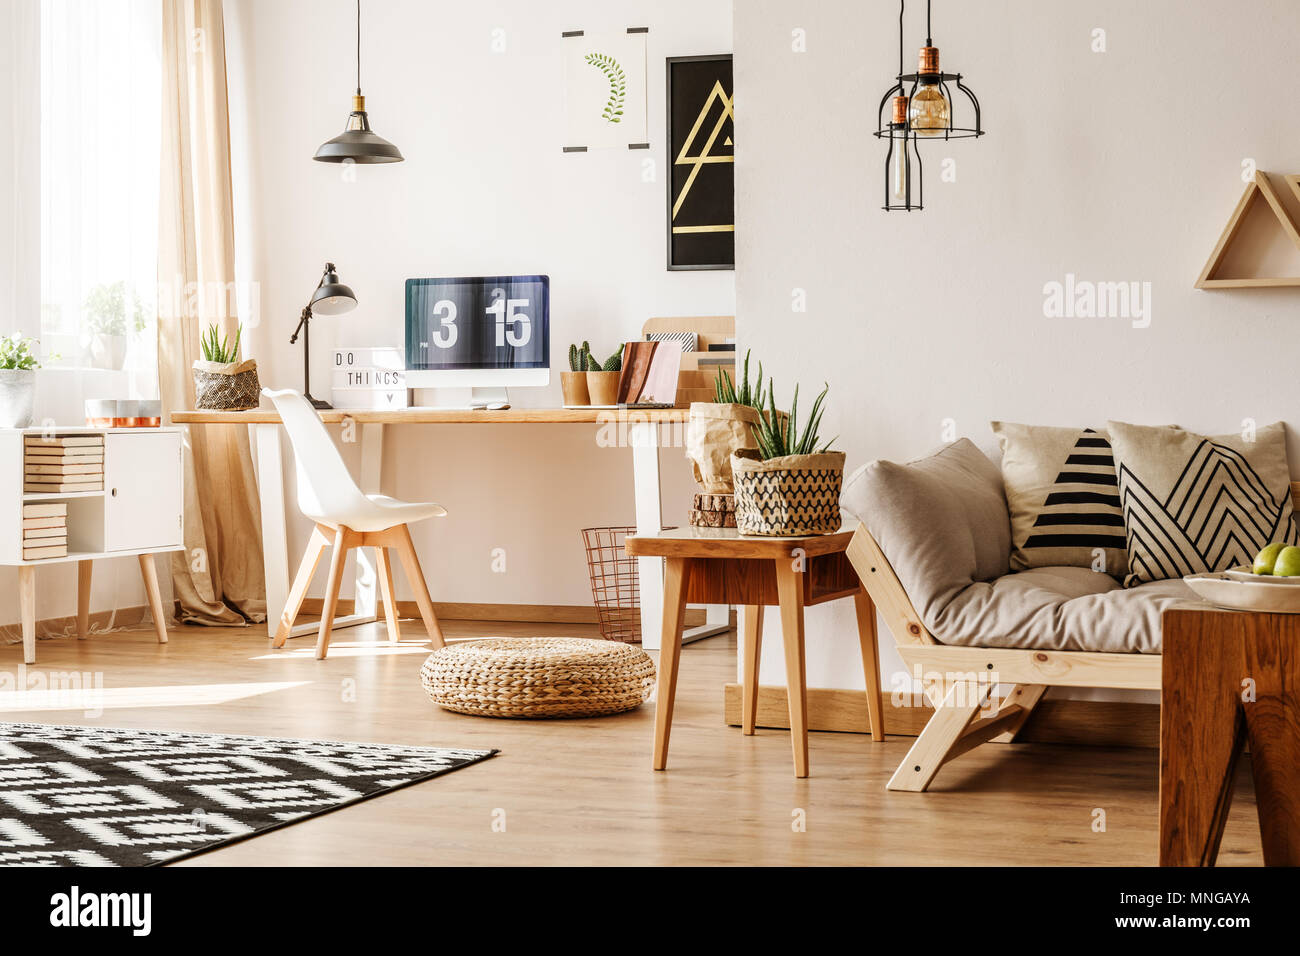 Modern Loft Interior Full Of Natural Wooden Furniture And